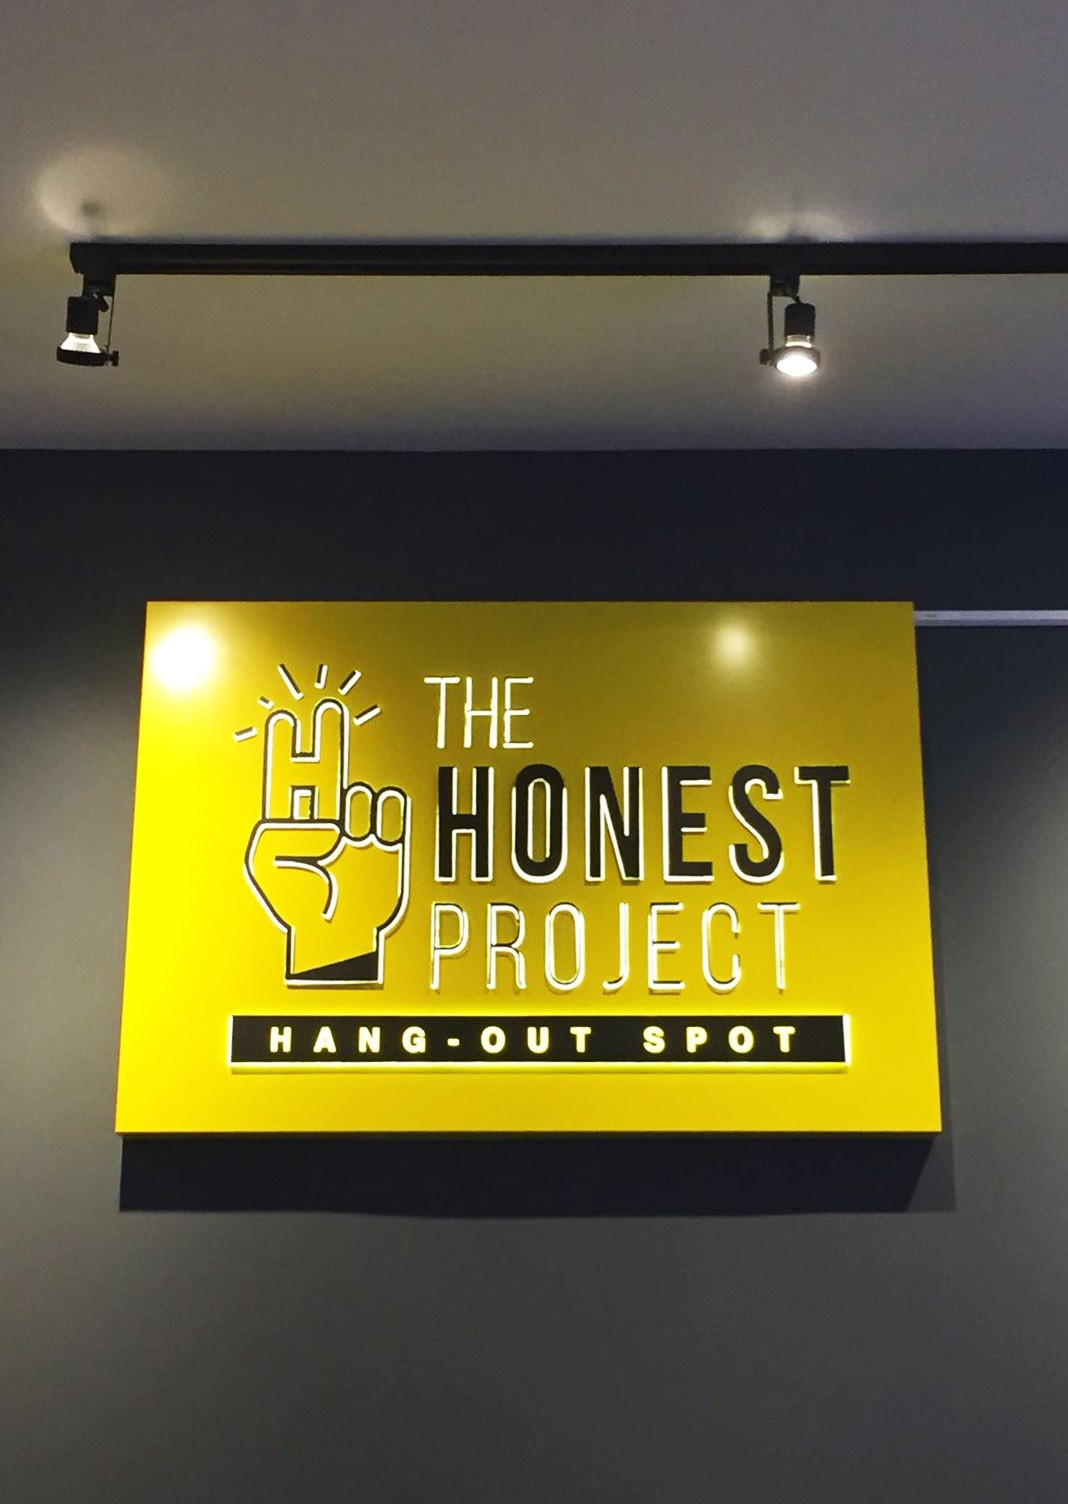 The Honest Project